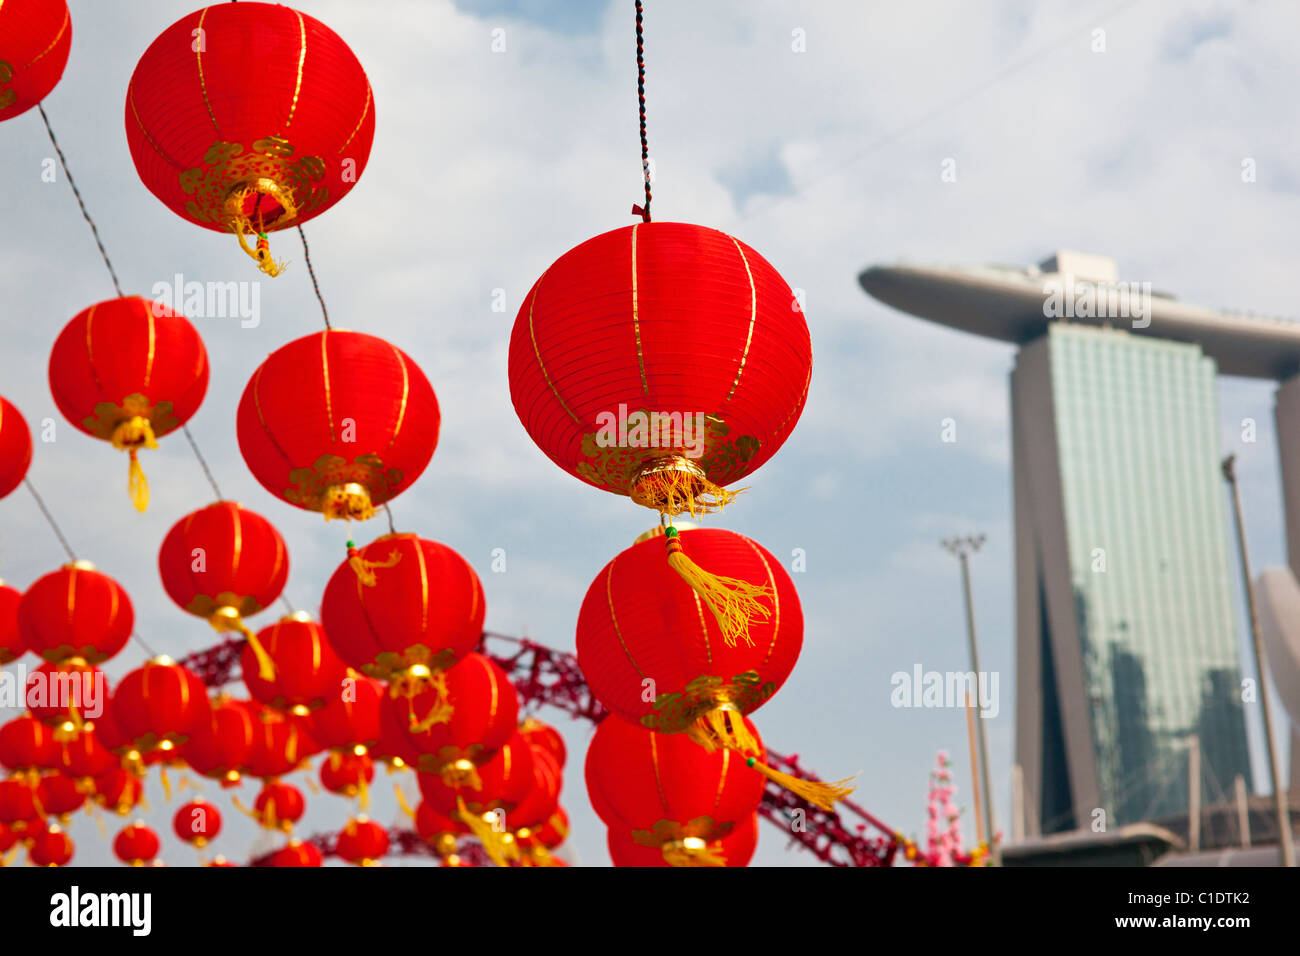 Chinese New Year decorations with the Marina Bay Sands Hotel in background.  Marina Bay, Singapore - Stock Image